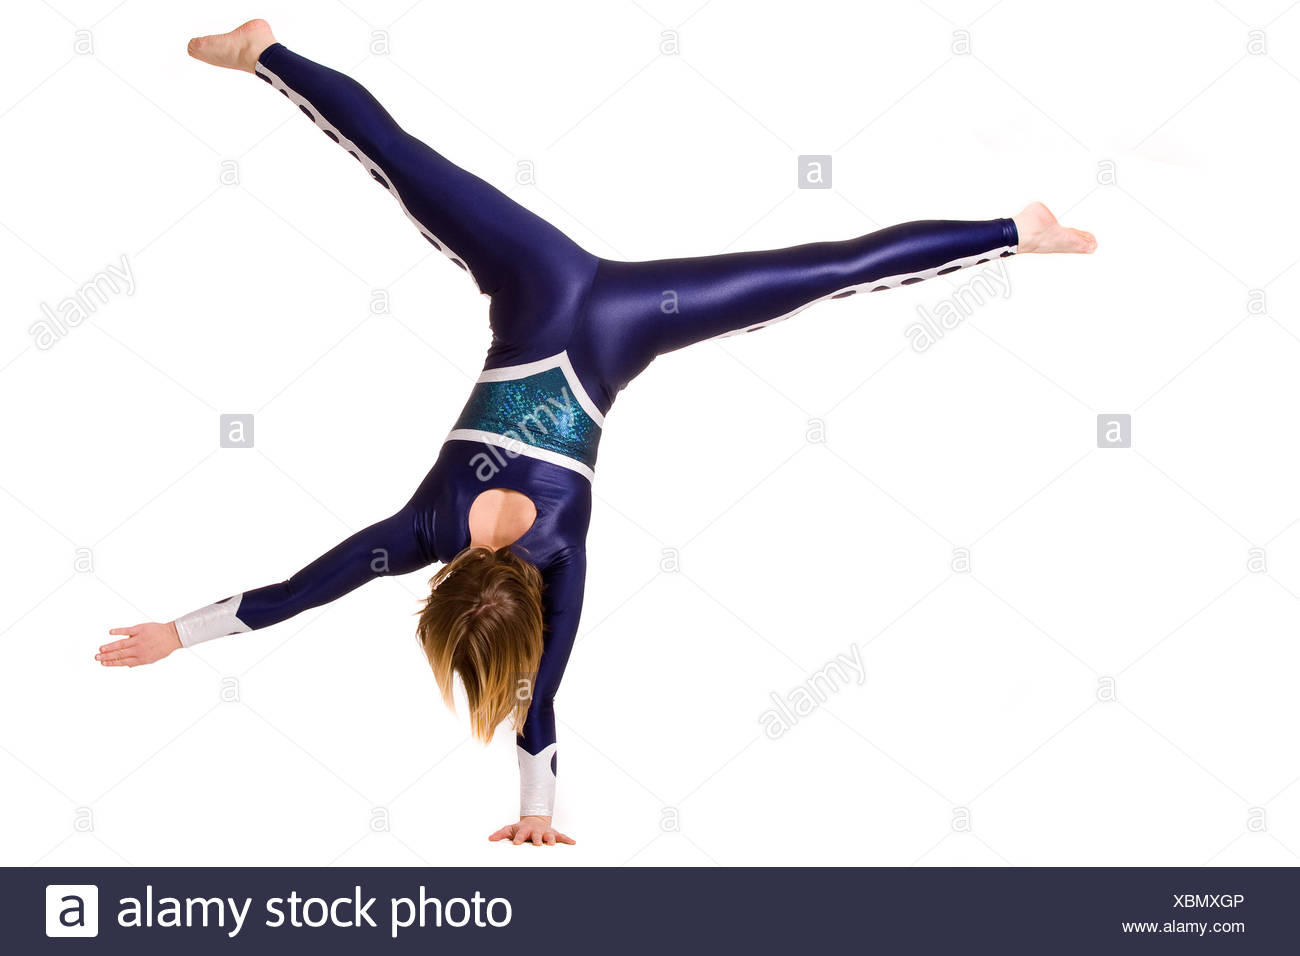 Standing on one hand - Stock Image